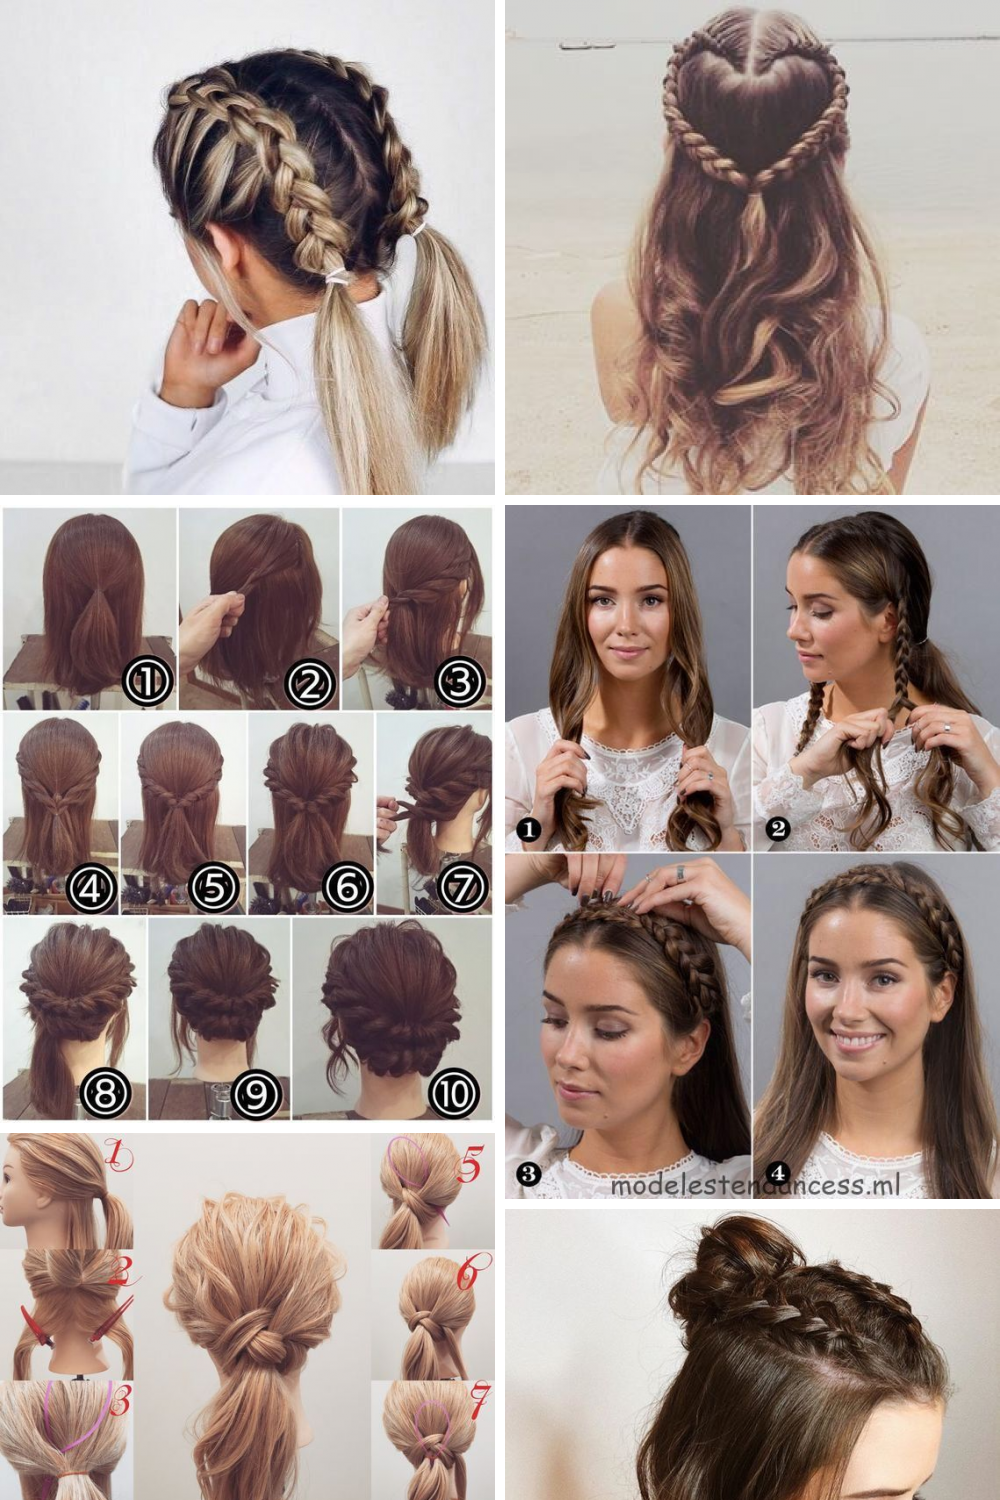 15 The Most Beautiful Easy Hairstyles Updo Ideas Easy Hairstyles Easy Hair Updos Short Hair Styles Easy